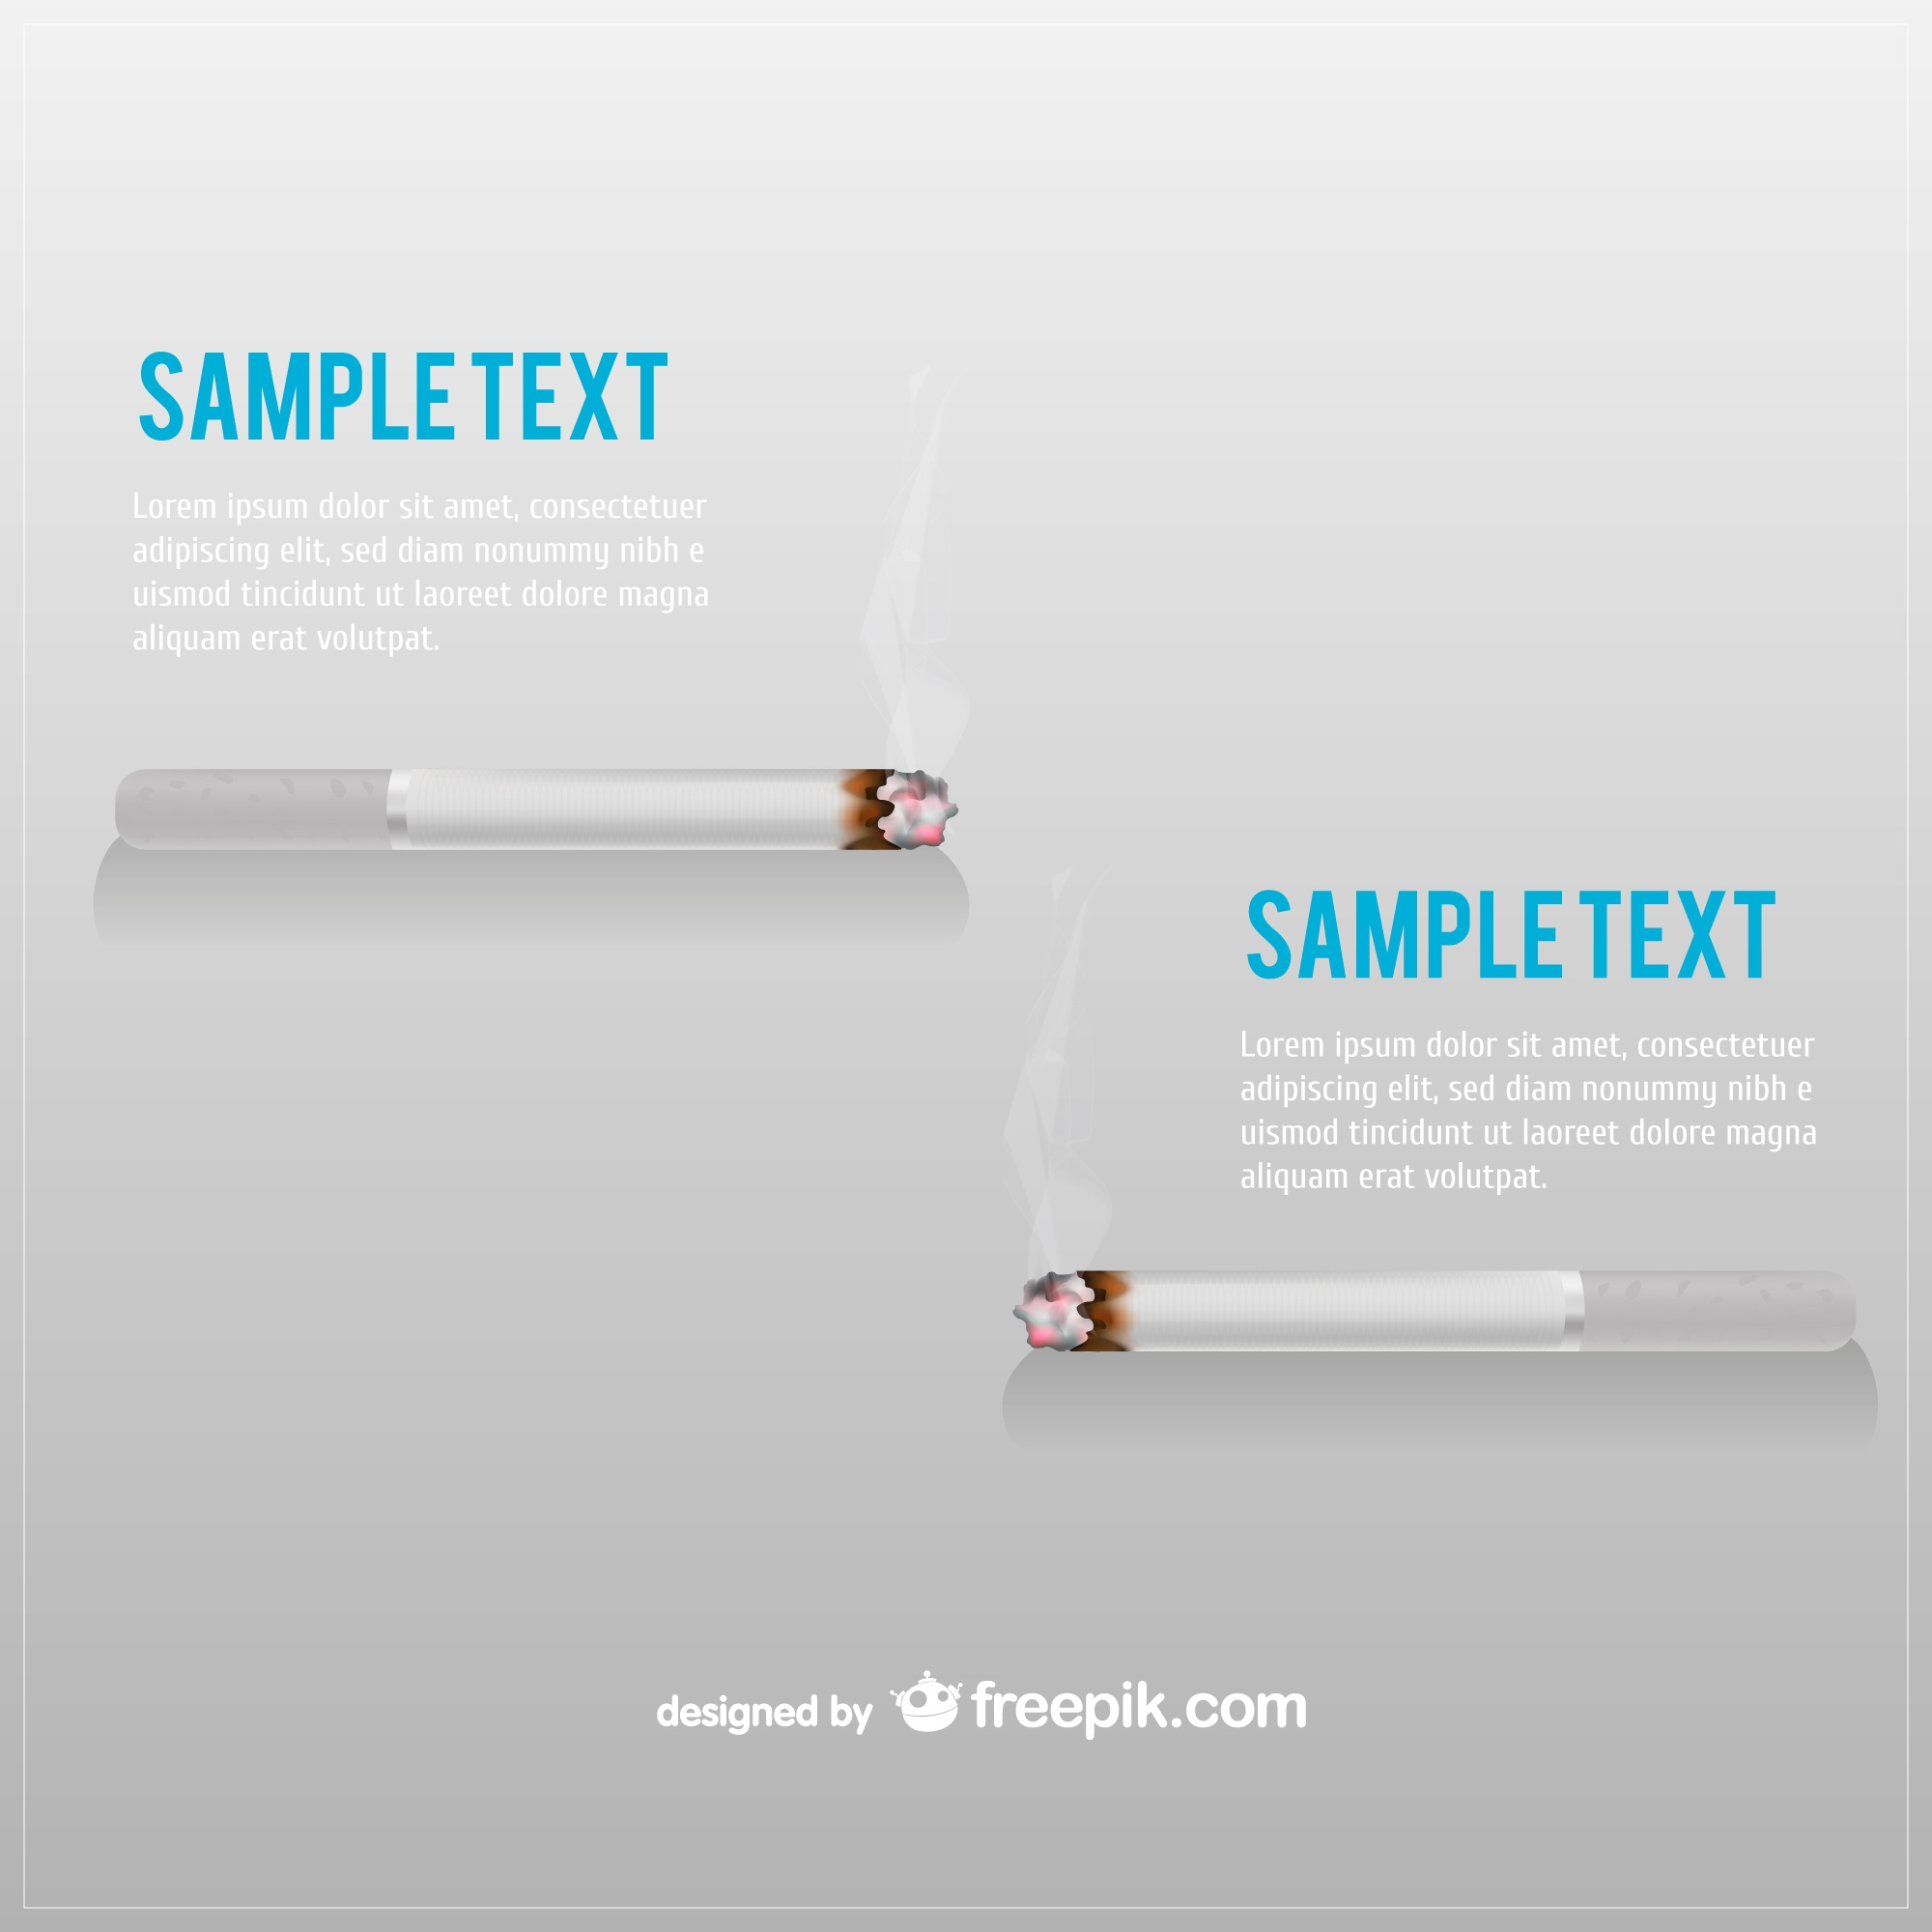 Cigarette and smoke vector image